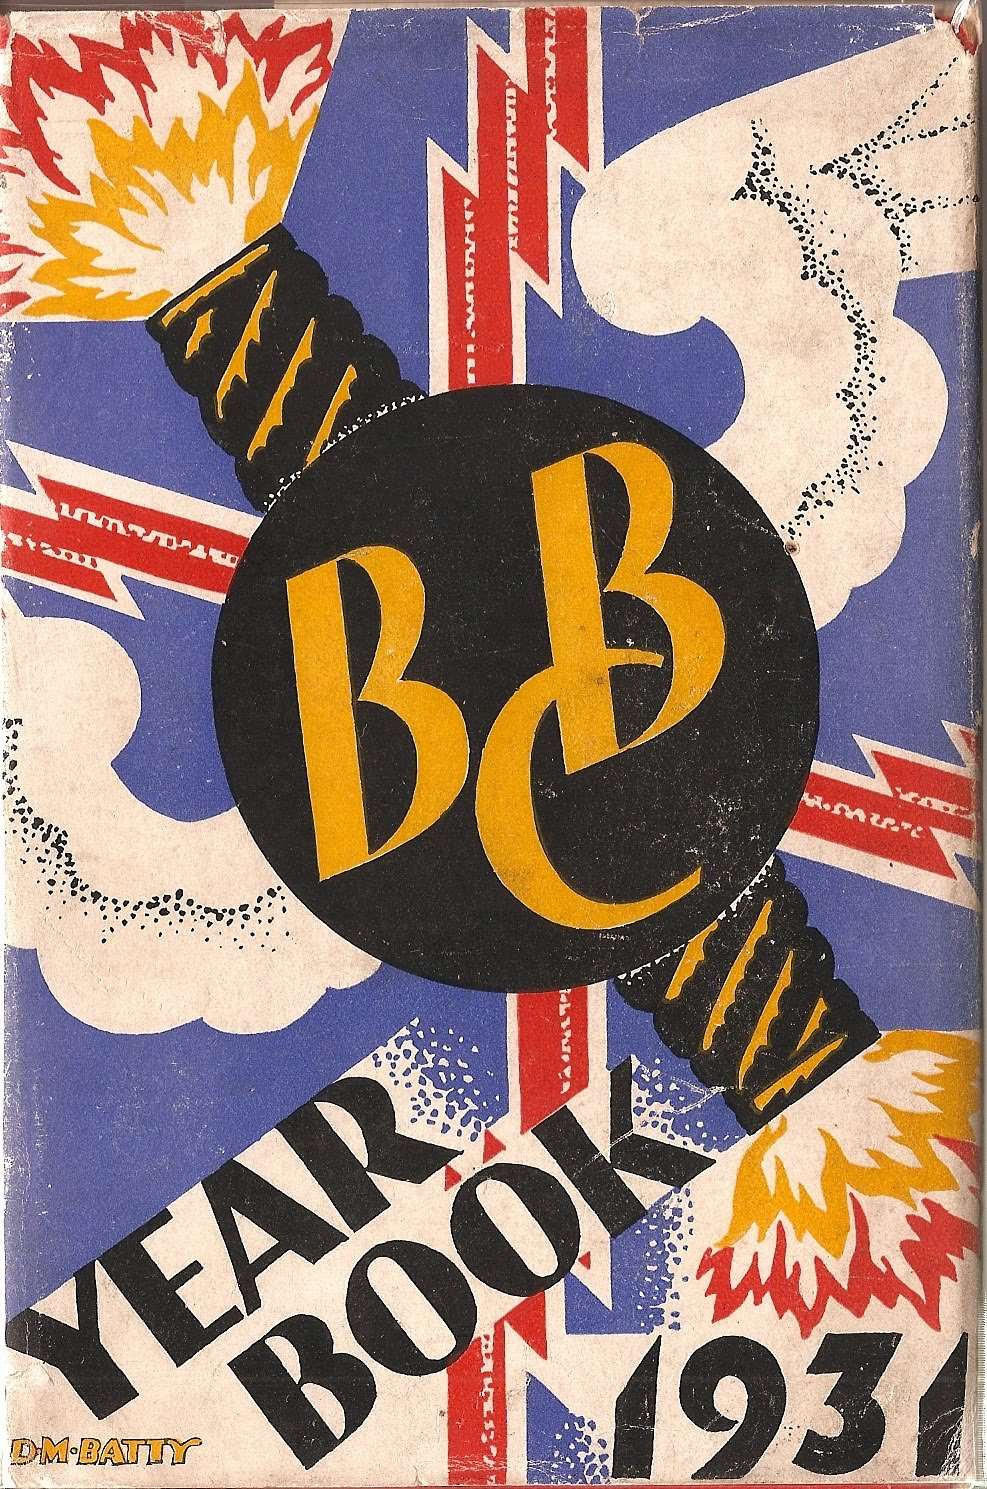 BBC Yearbook 1931 Jacket